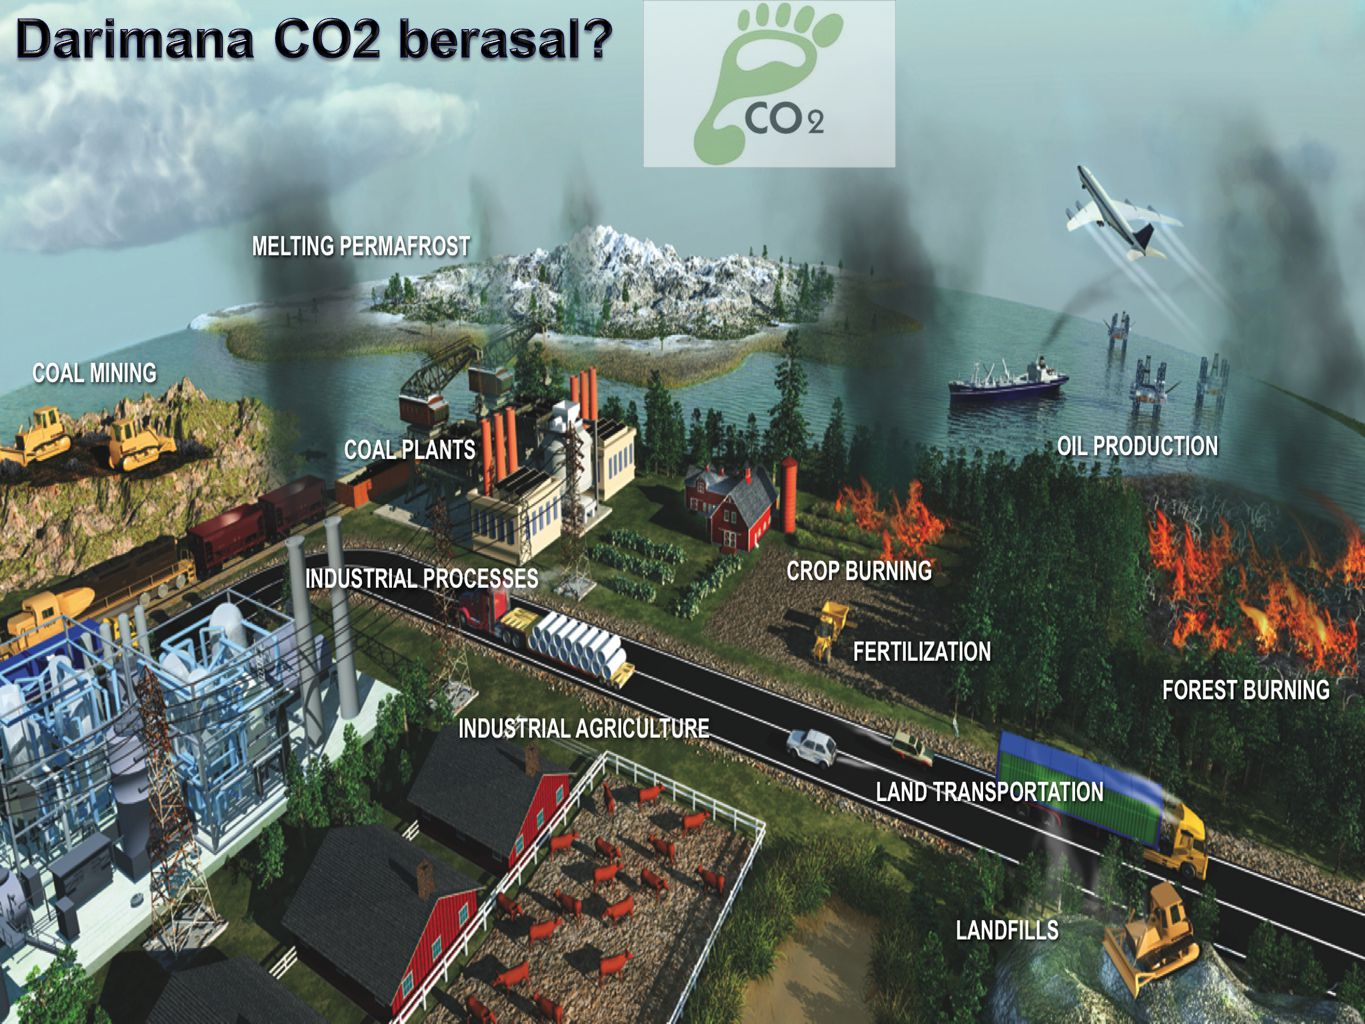 CROP BURNING OIL PRODUCTION FOREST BURNING LAND TRANSPORTATION LANDFILLS FERTILIZATION INDUSTRIAL AGRICULTURE Dari mana emisi GRK itu datang?